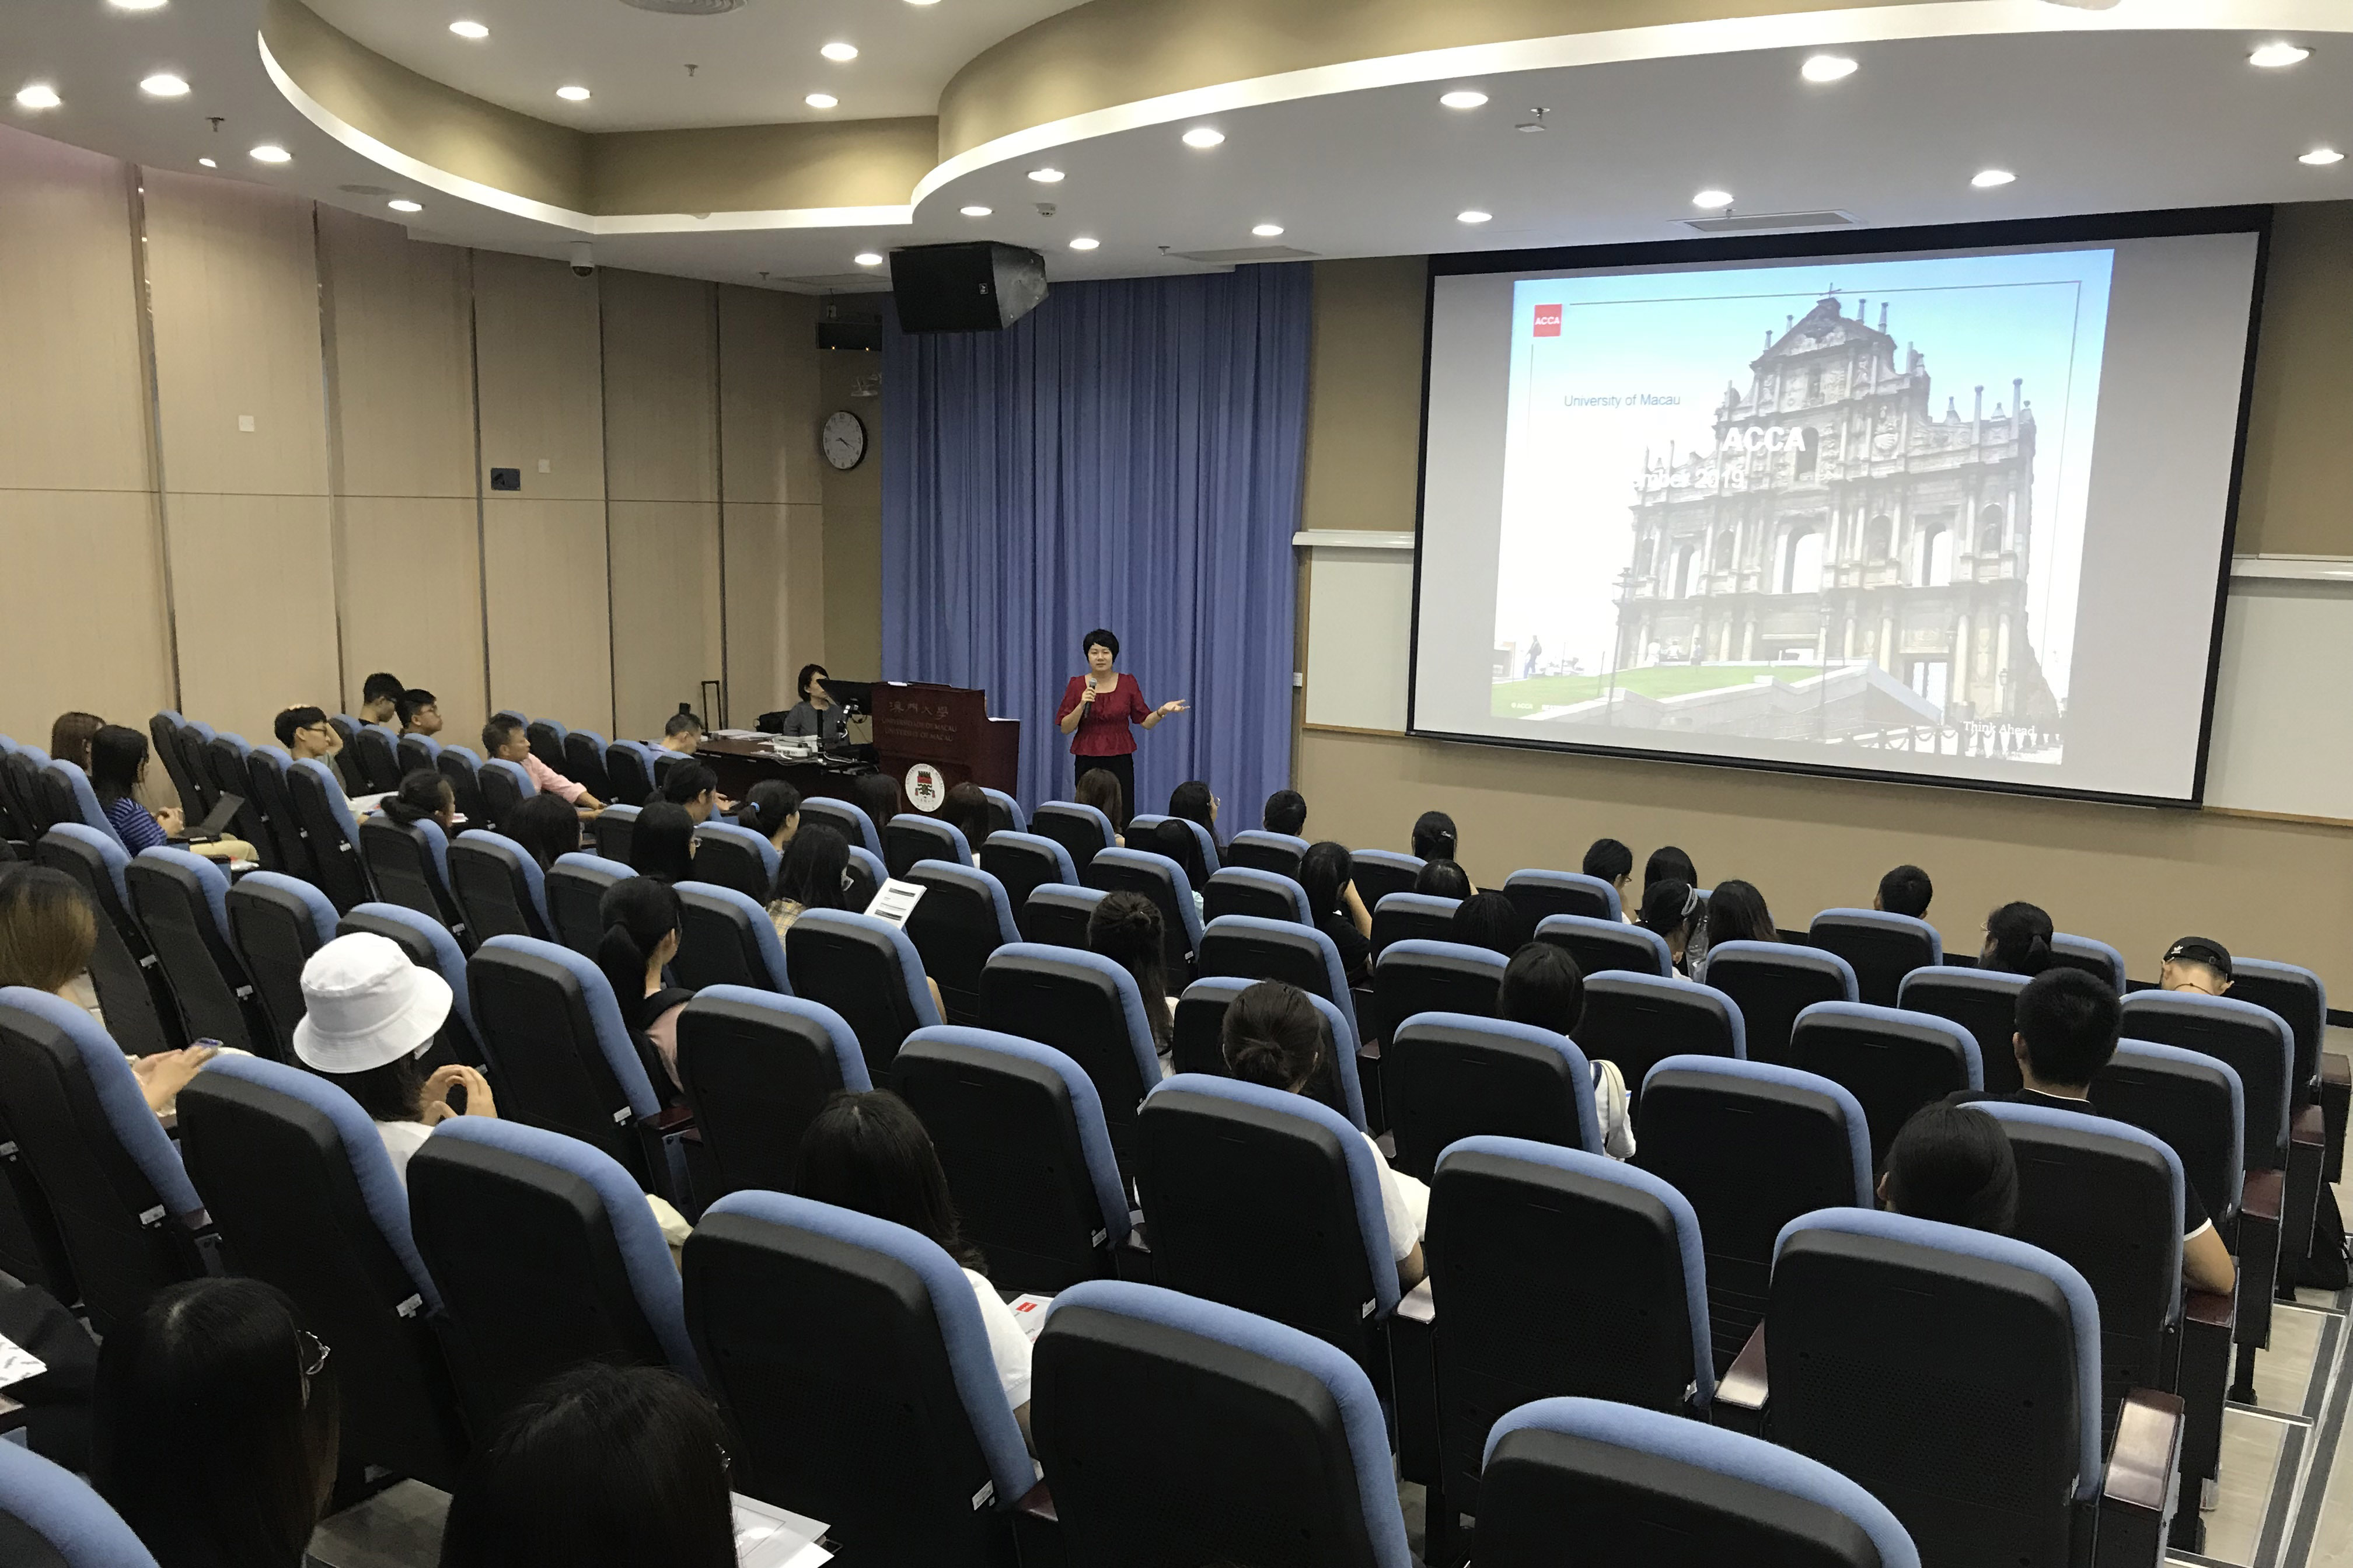 UM holds an accounting information seminar